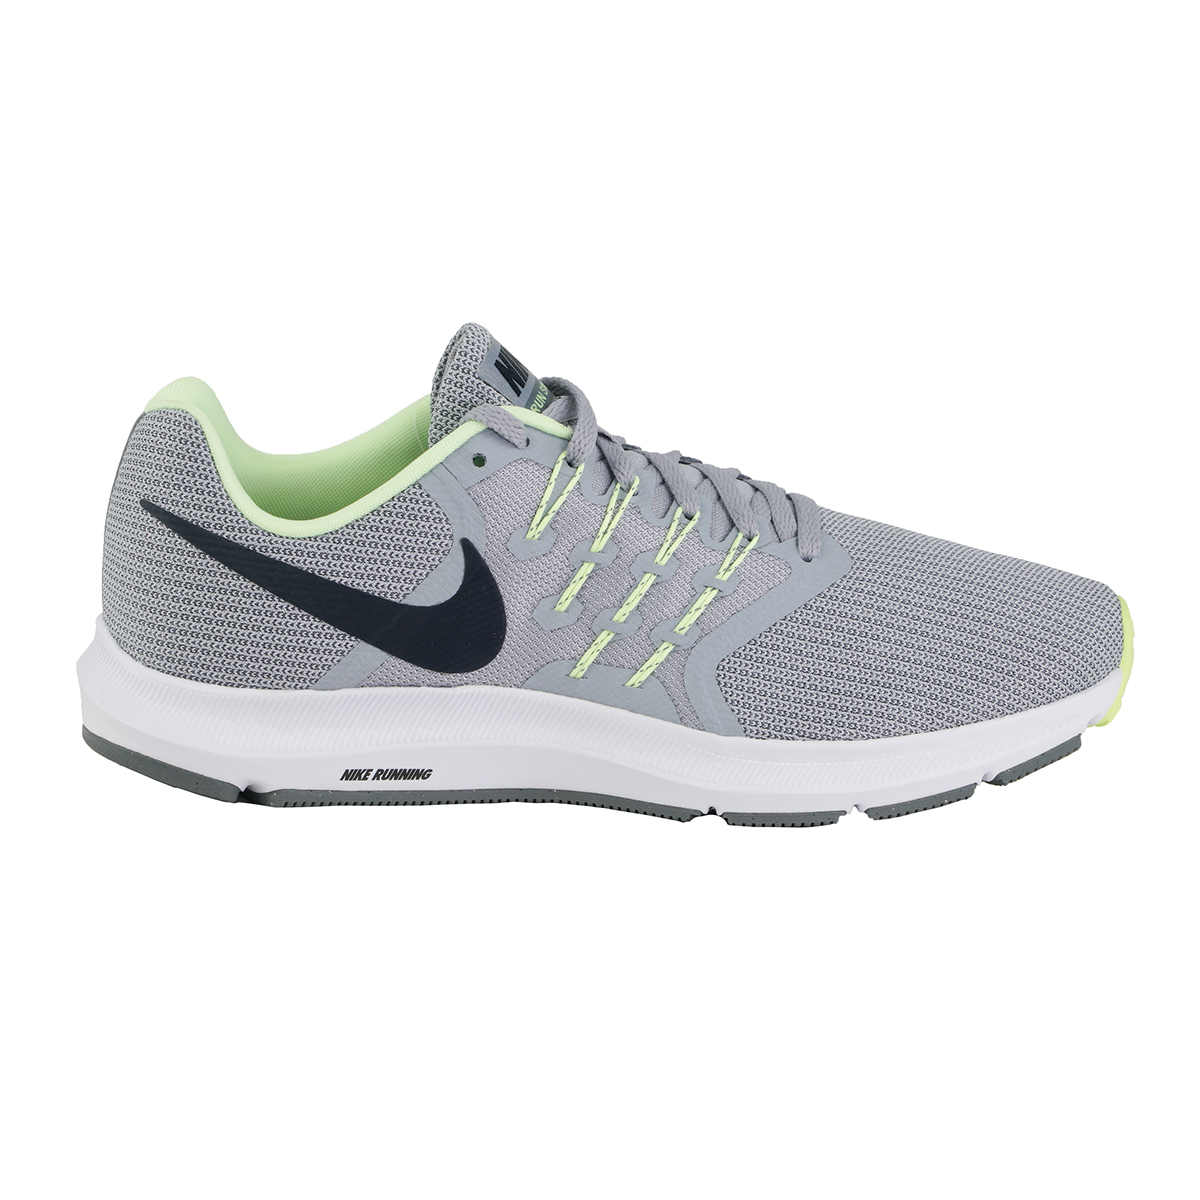 Nike Run Swift Wolf Grey Green Men Running Shoes Sneakers Trainers 6a08627db